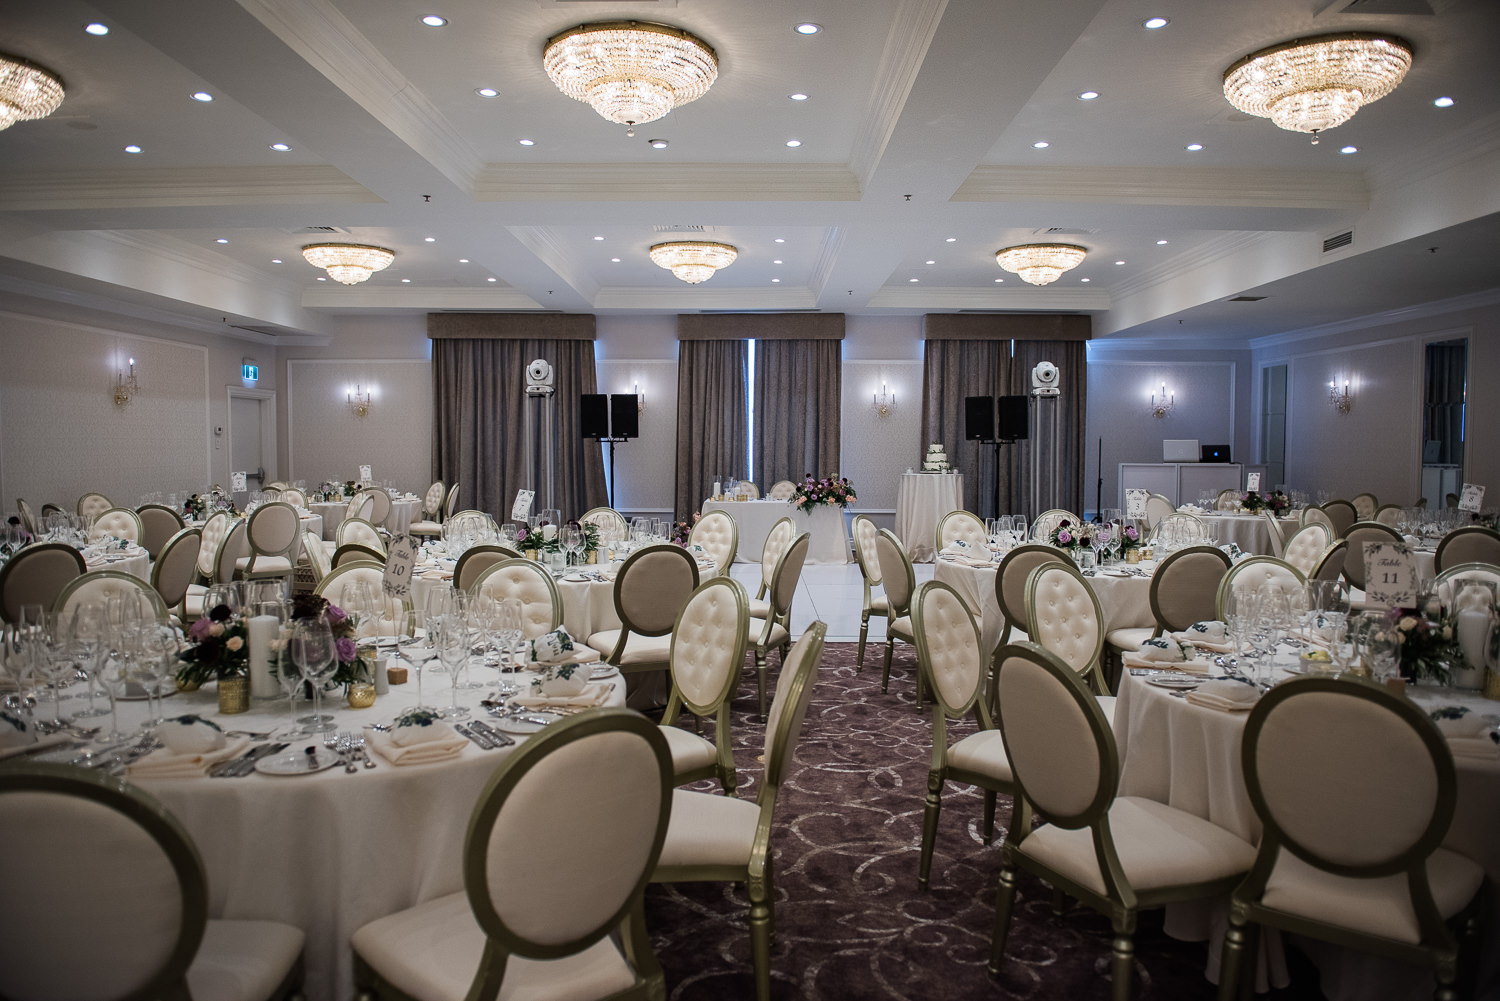 decoration-table-ronde-chaises-cremes-nappes-blanches-chandelier-salle-blanche